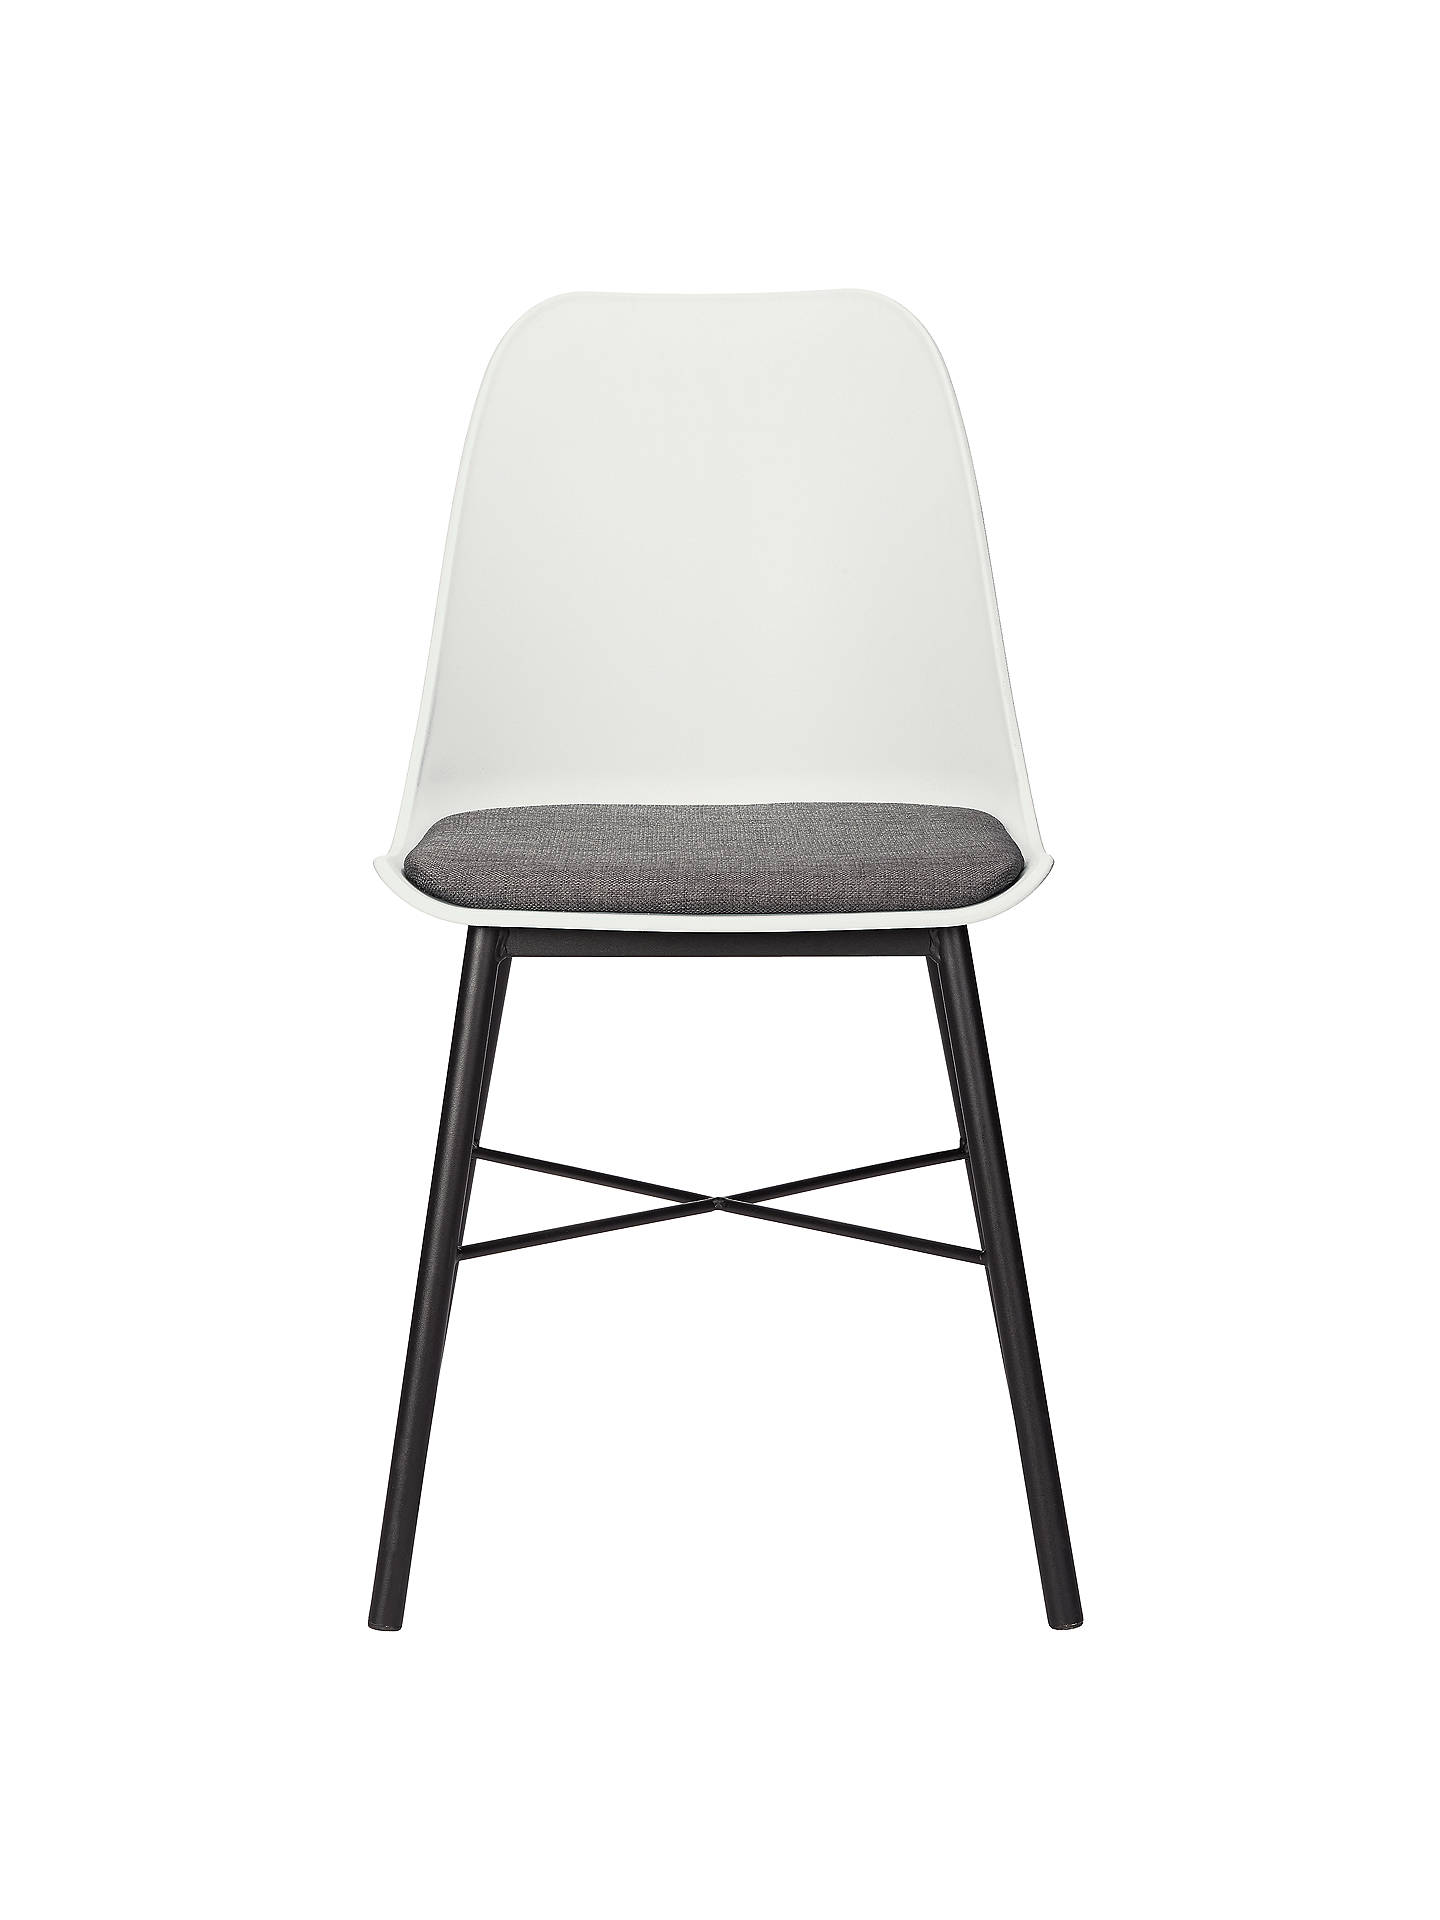 Wondrous House By John Lewis Whistler Dining Chairs Set Of 2 White Caraccident5 Cool Chair Designs And Ideas Caraccident5Info